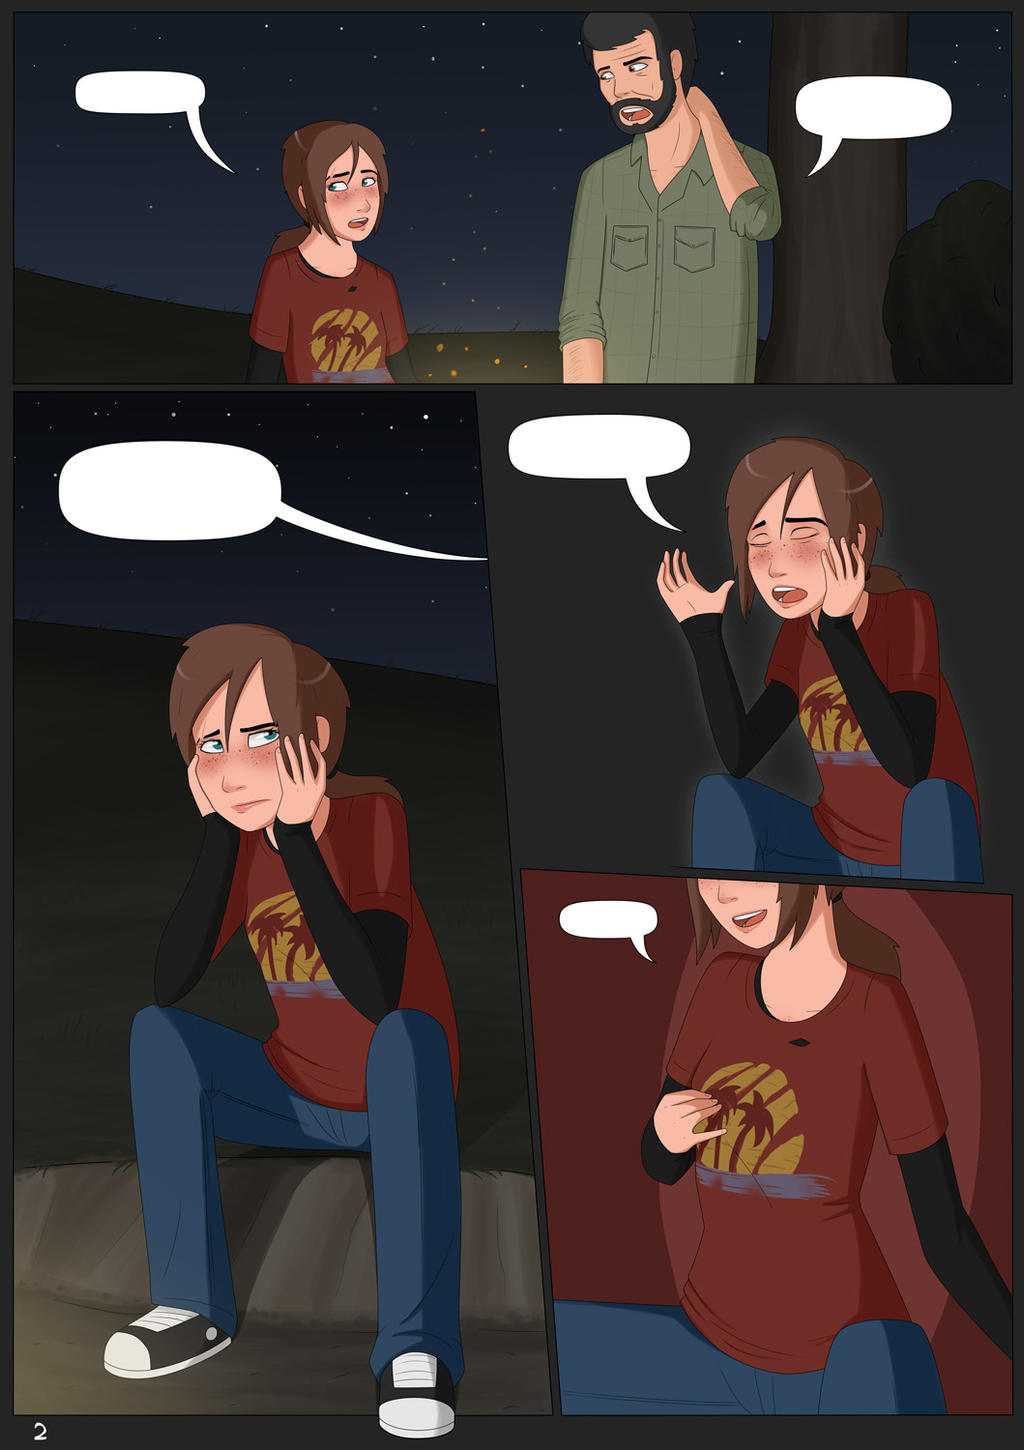 Ellie Unchained #1 - Page 2 by Freakorama1 on DeviantArt